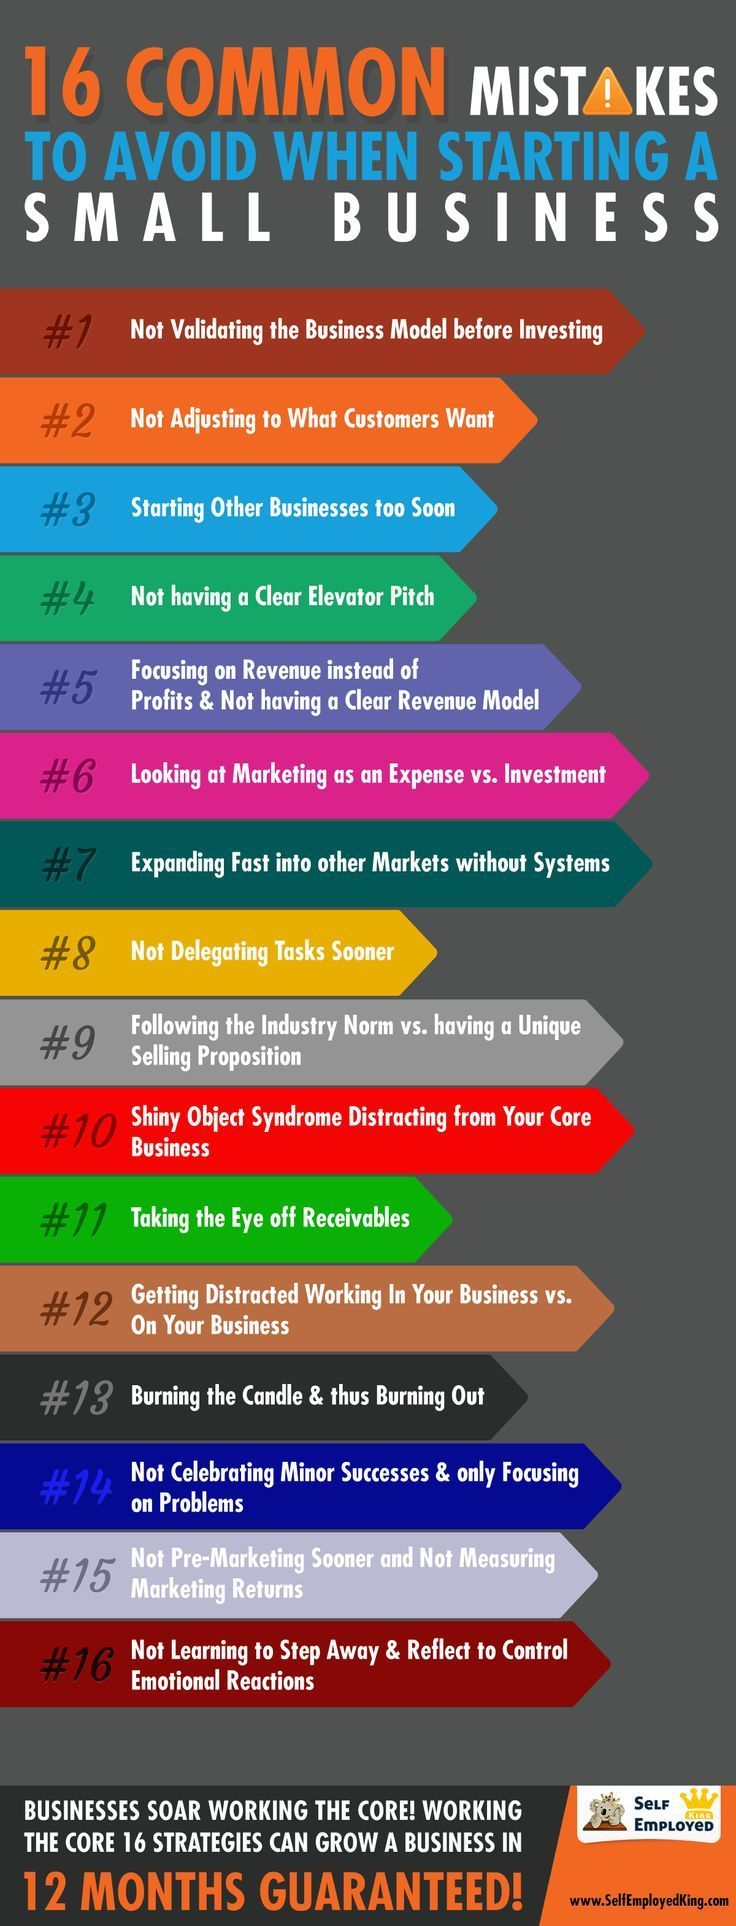 16 Common Mistakes to Avoid When Starting a Small Business from a Survey of over 100 Entrepreneurs http://snip.ly/xl6ix